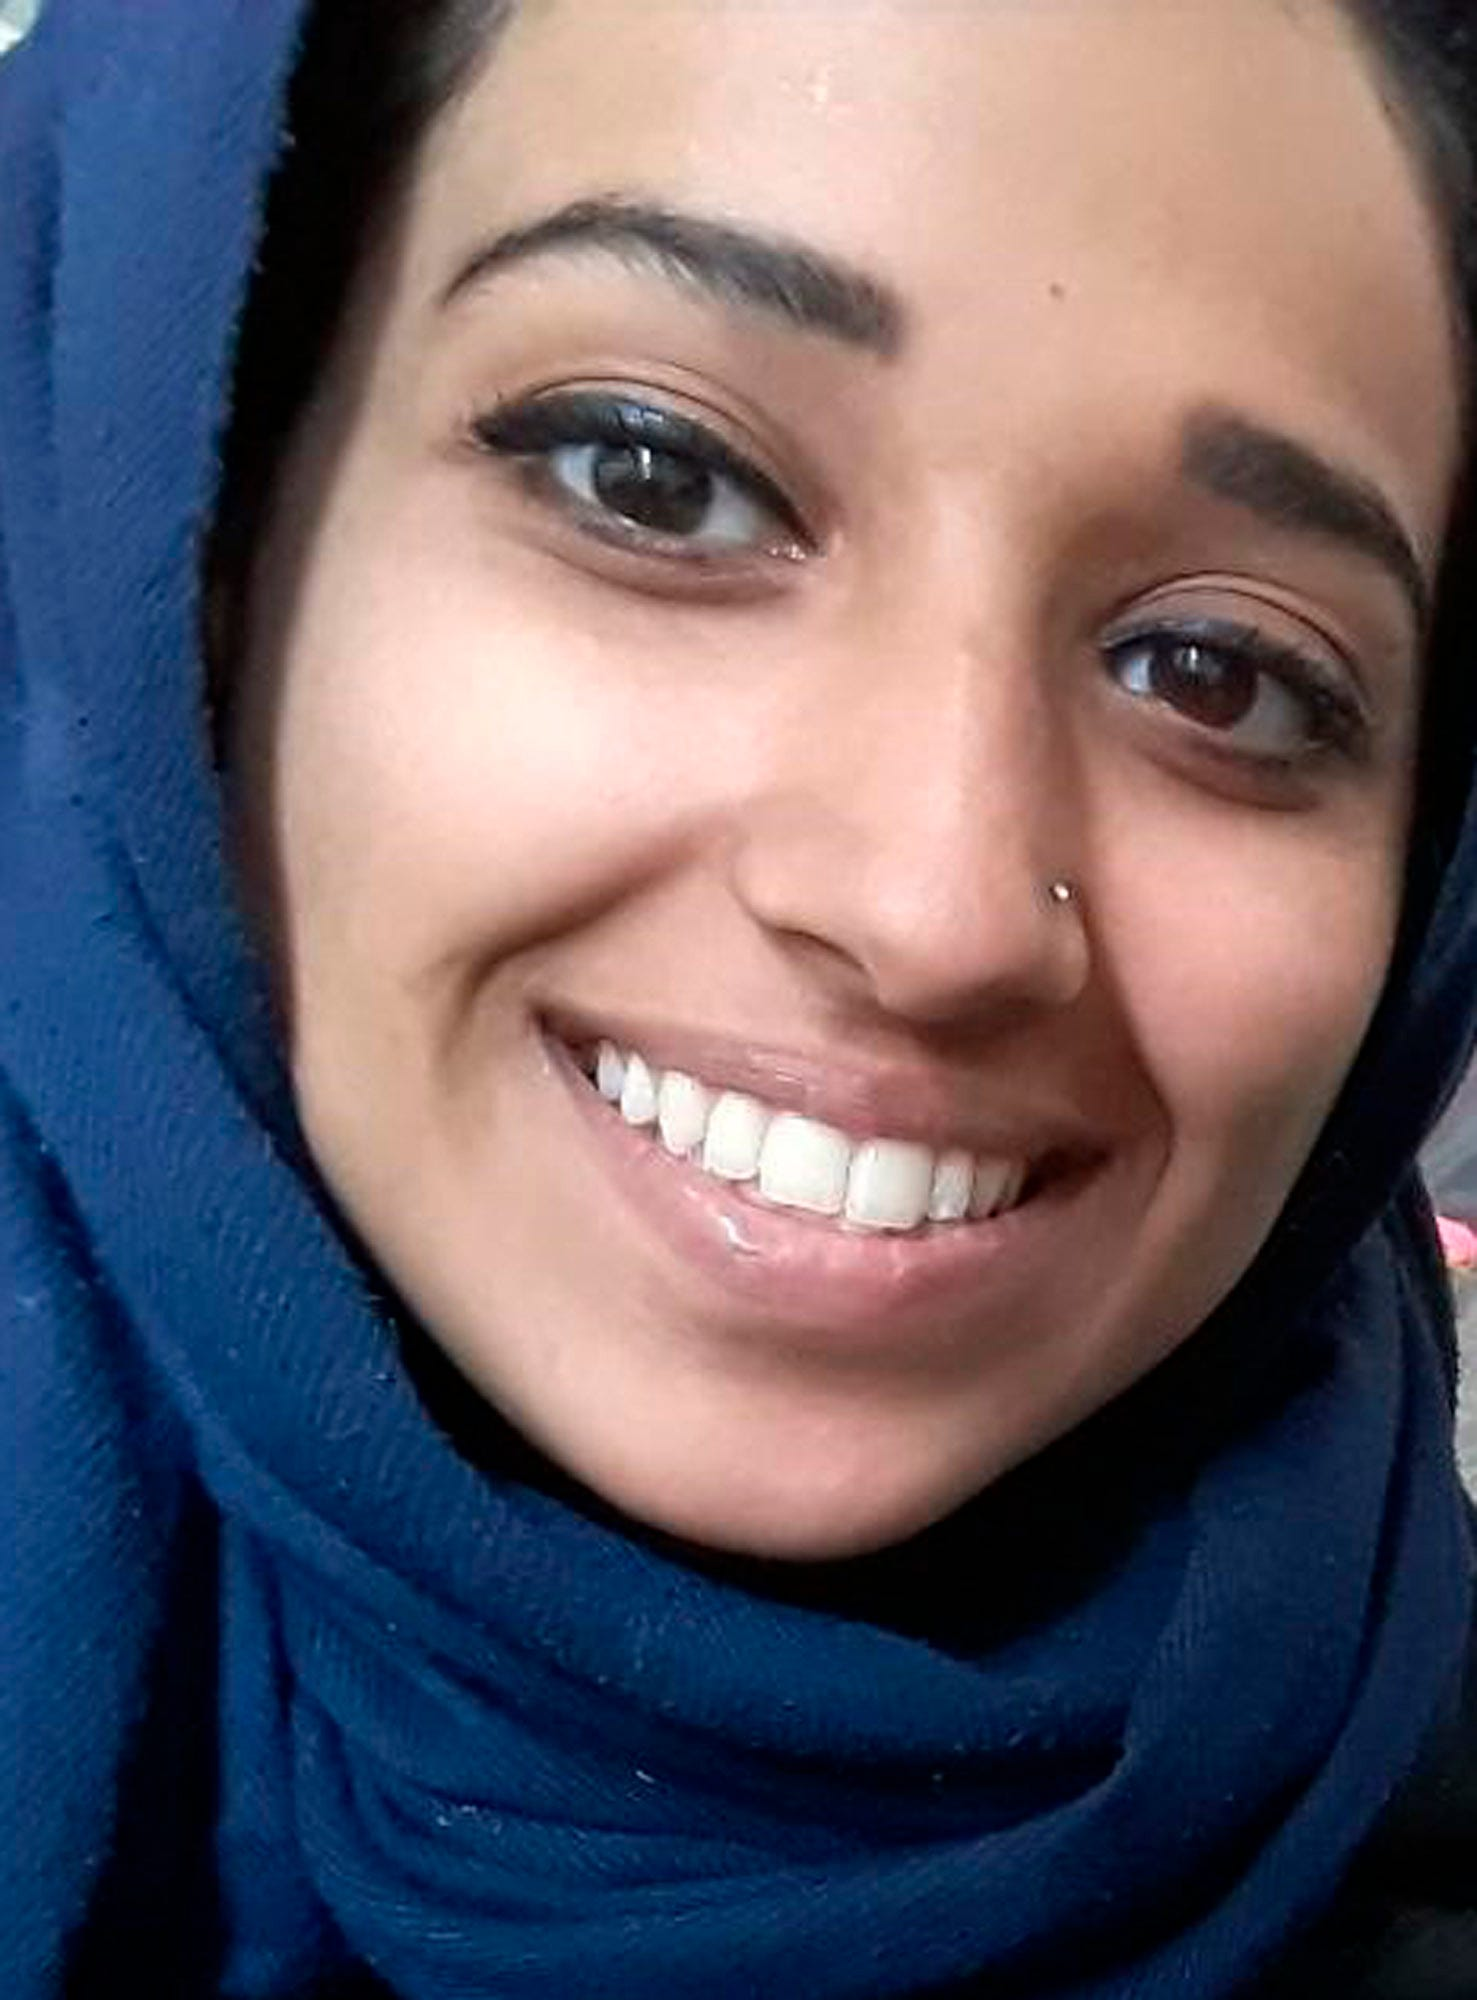 American ISIS bride Hoda Muthana, from Alabama, wants to return, face US justice